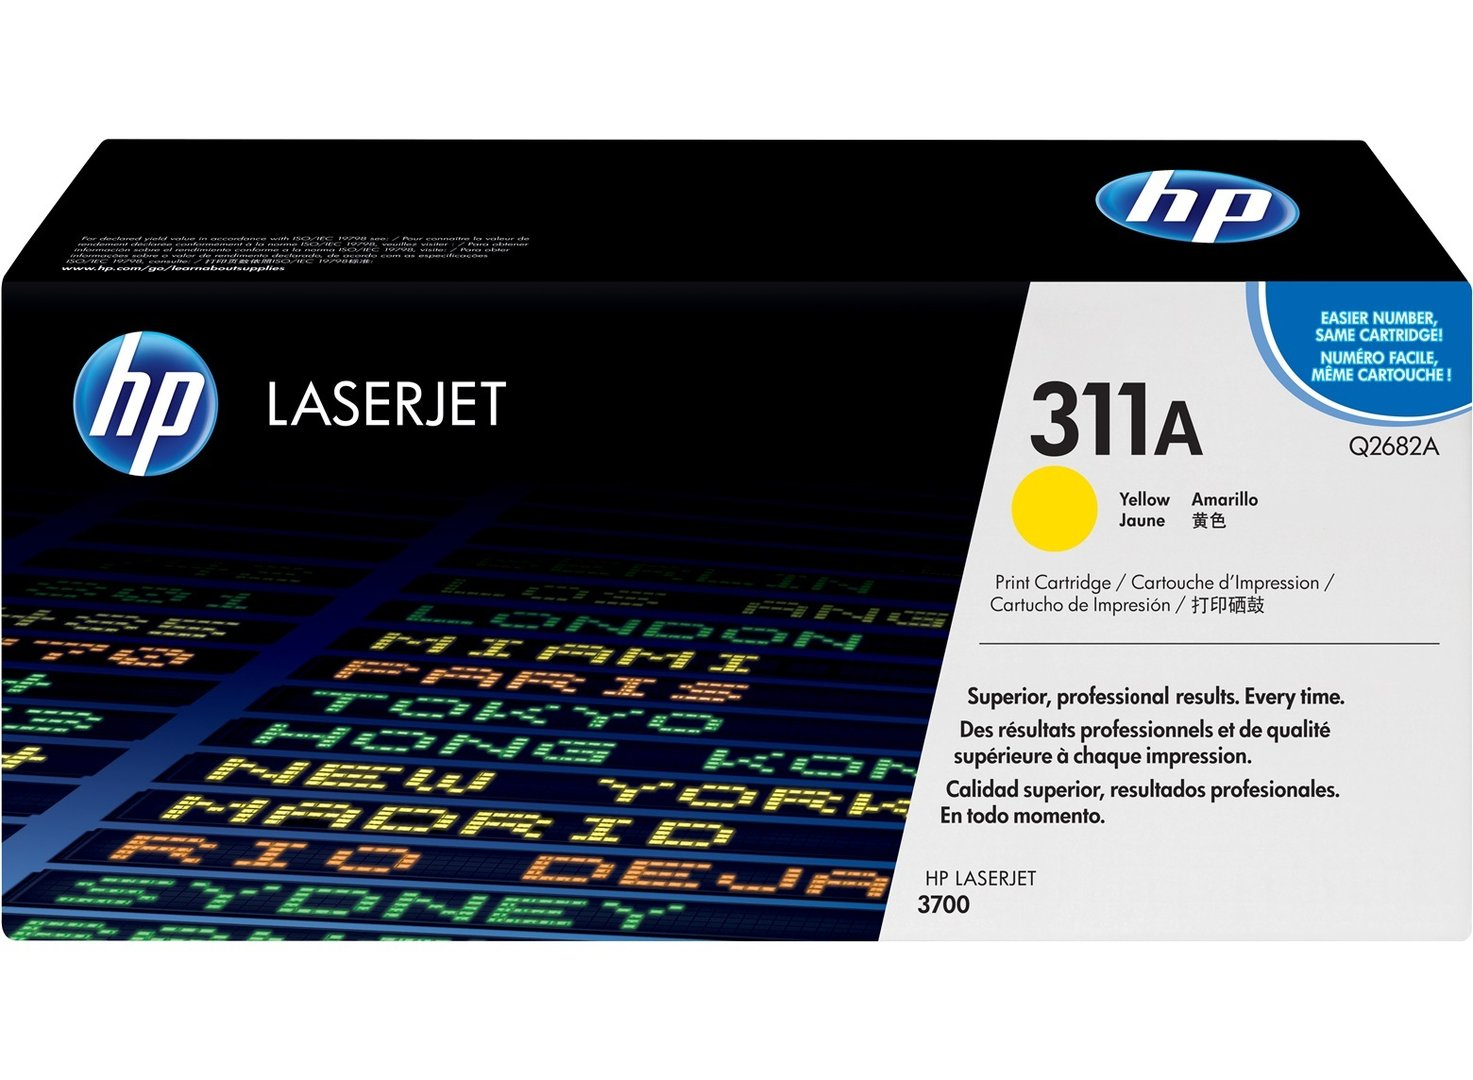 Related to HP 3700DTN: Q2682A